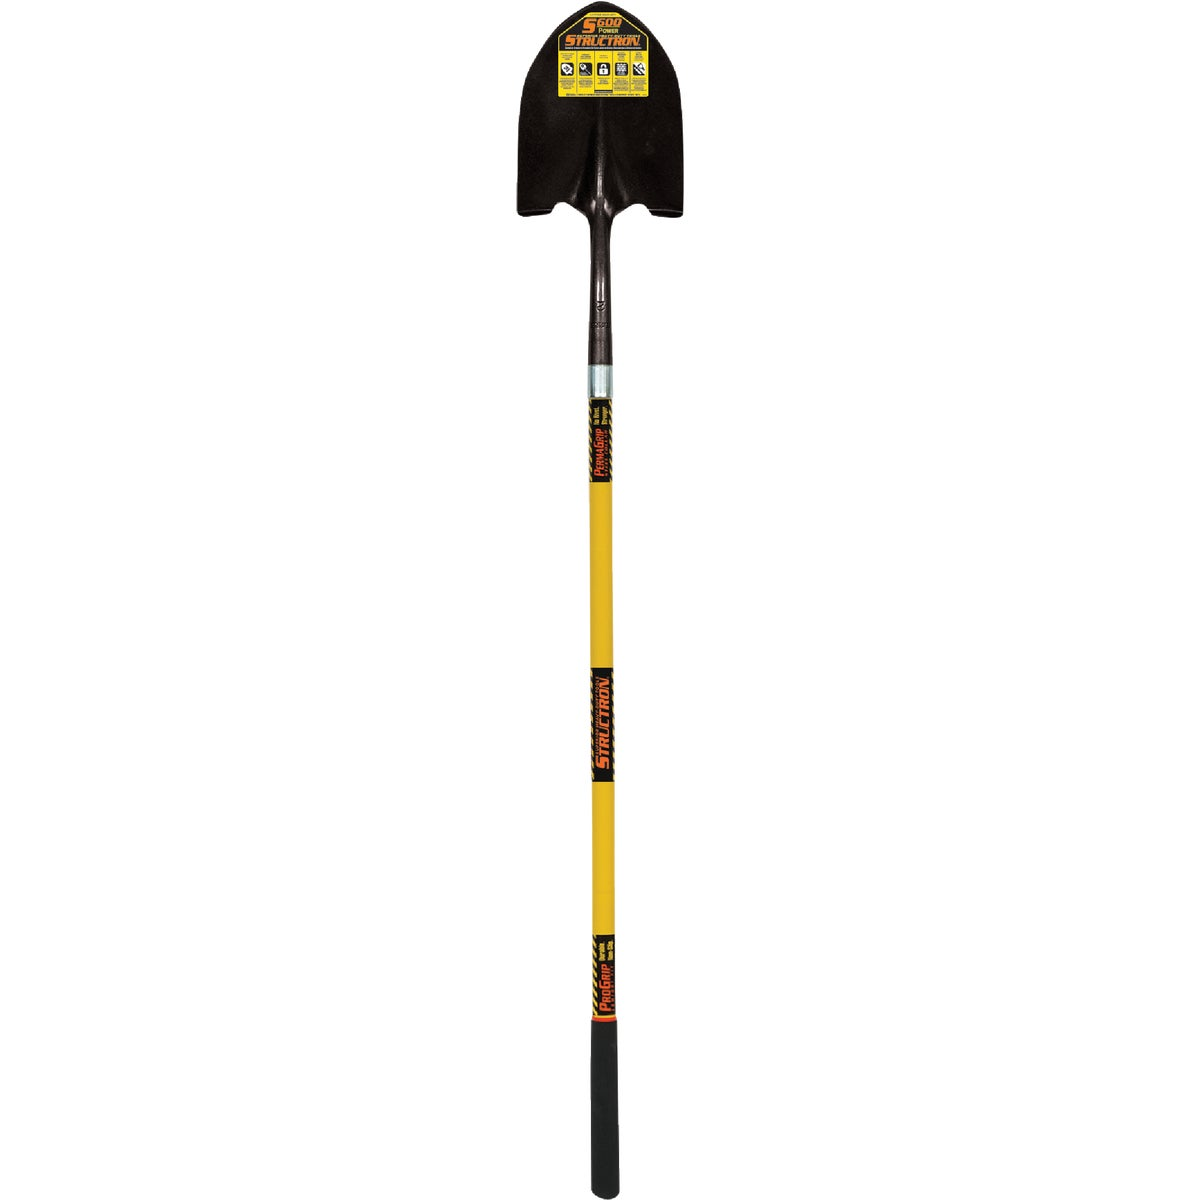 FG HDL LHRP SHOVEL - STR-S712 by Seymour Mfg Co